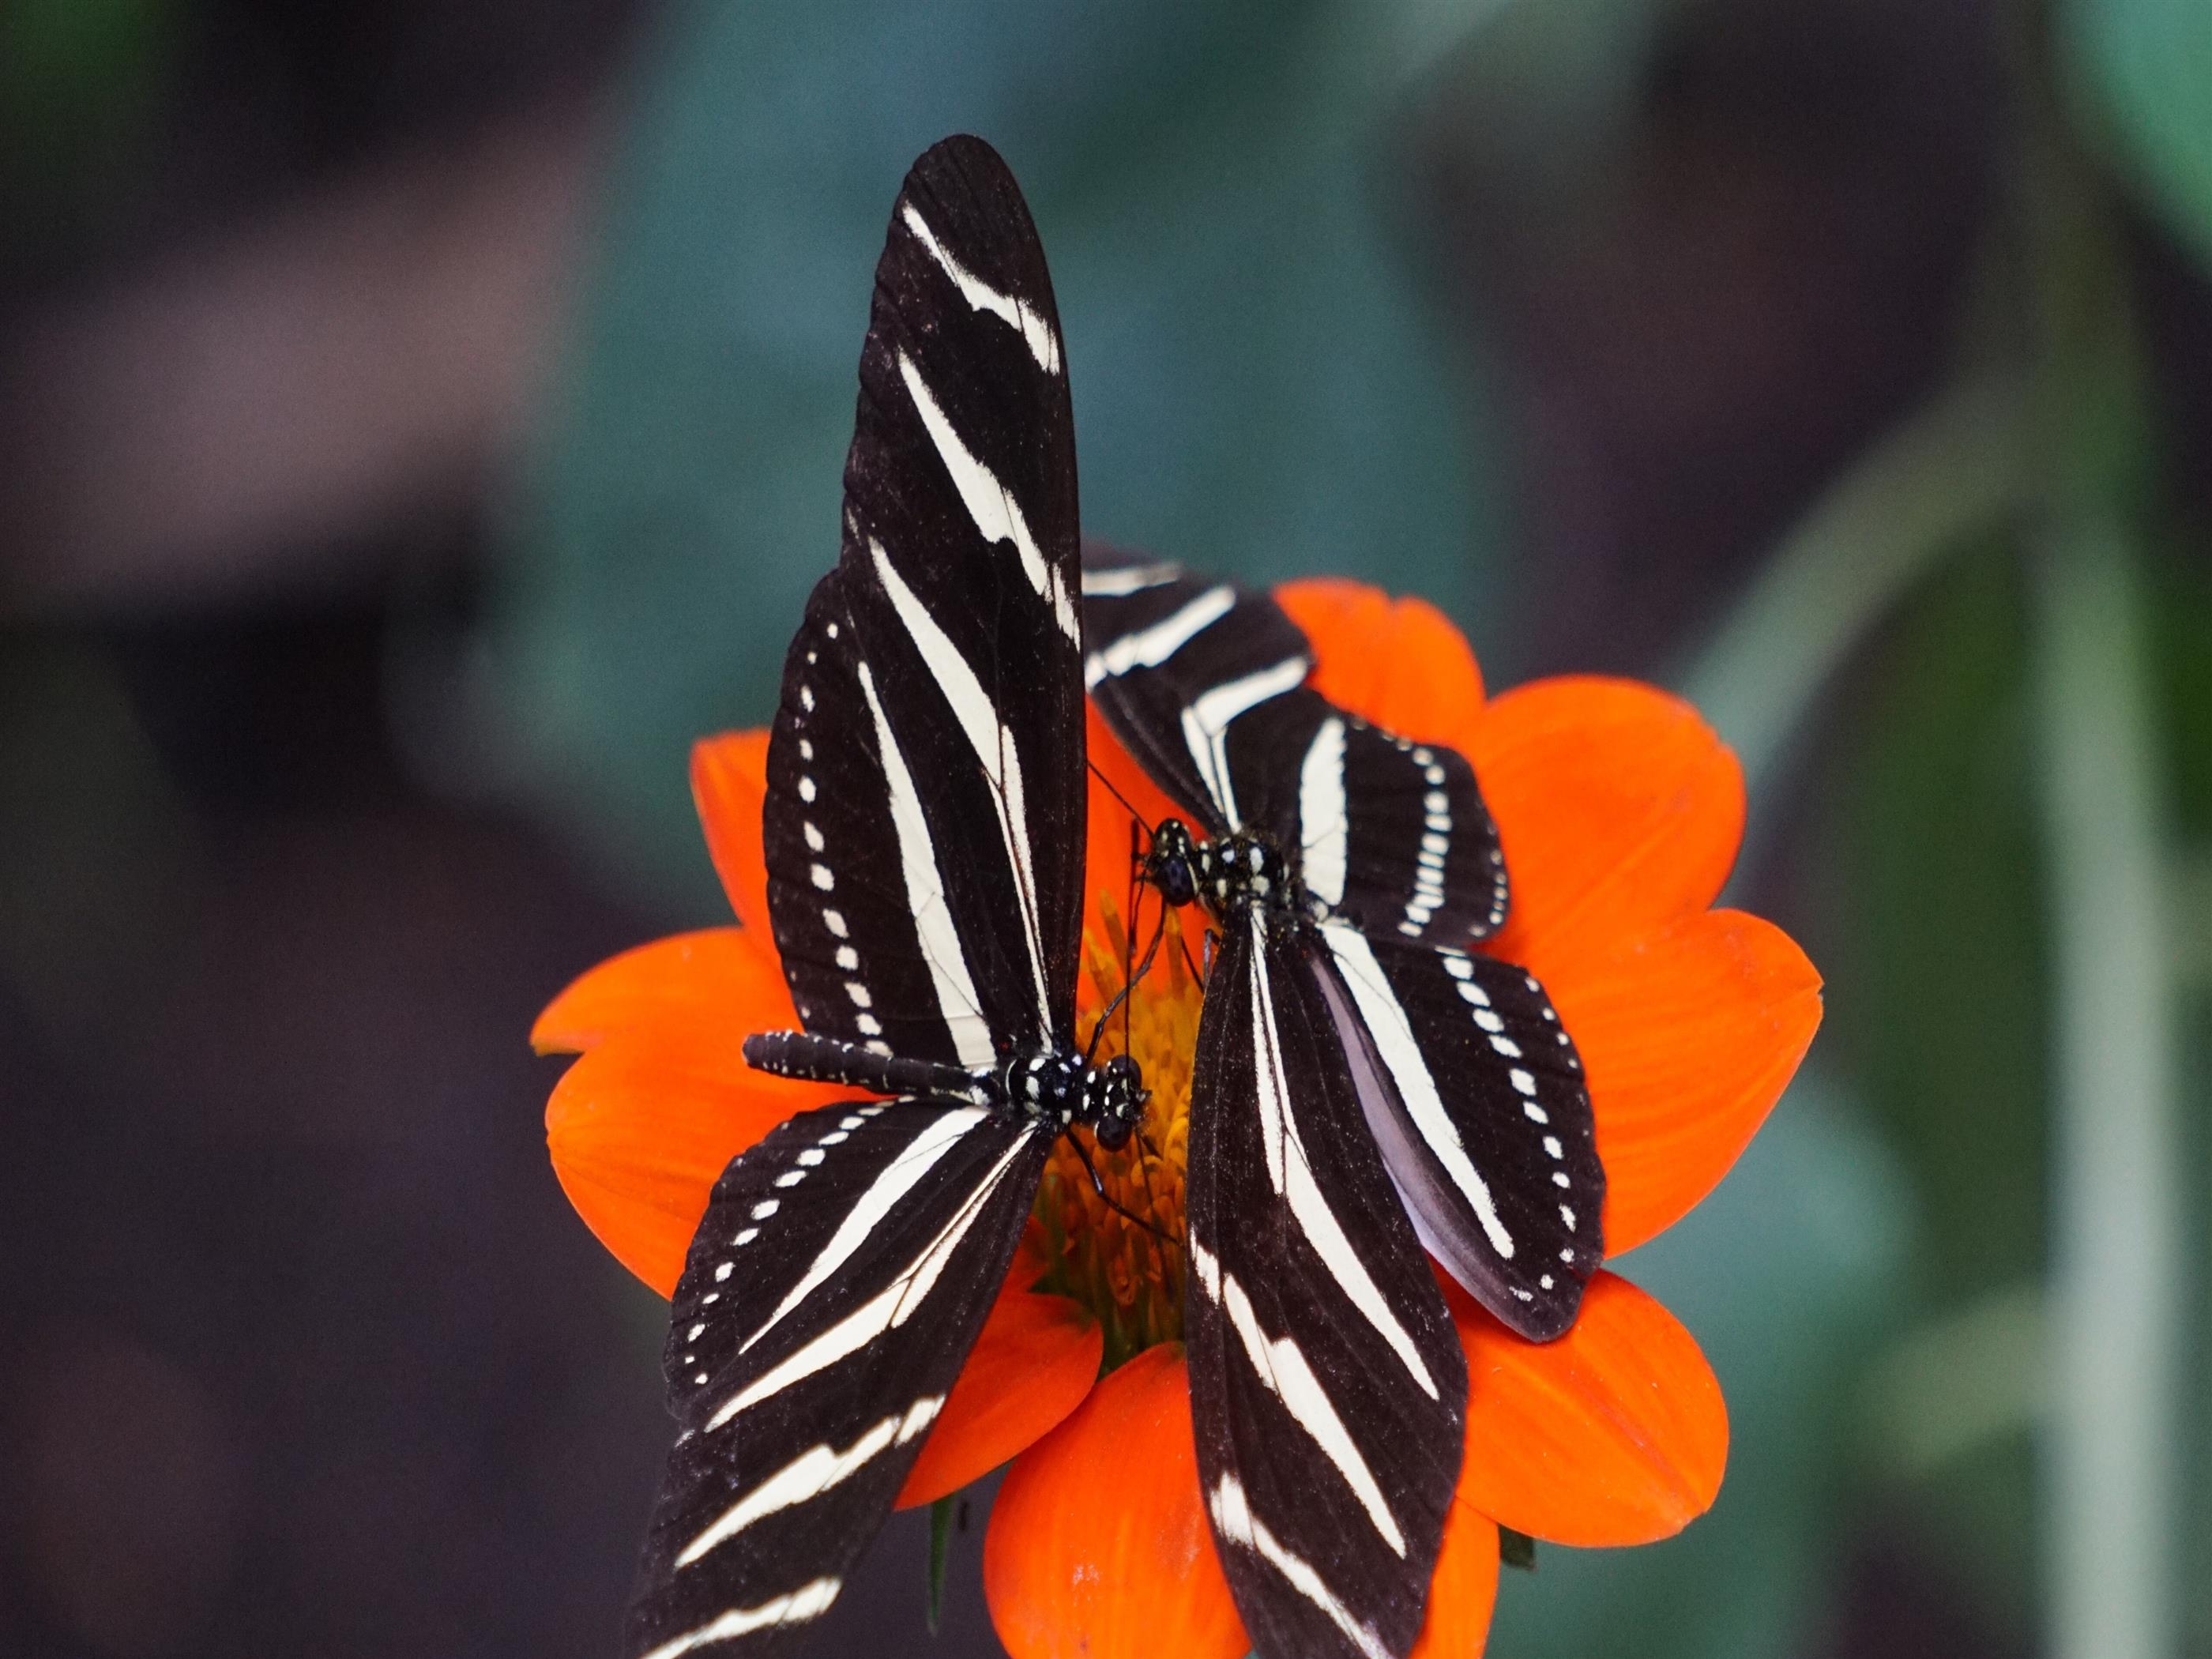 2800x2100 Black and White Butterflies on Orange Flower 5K Wallpaper